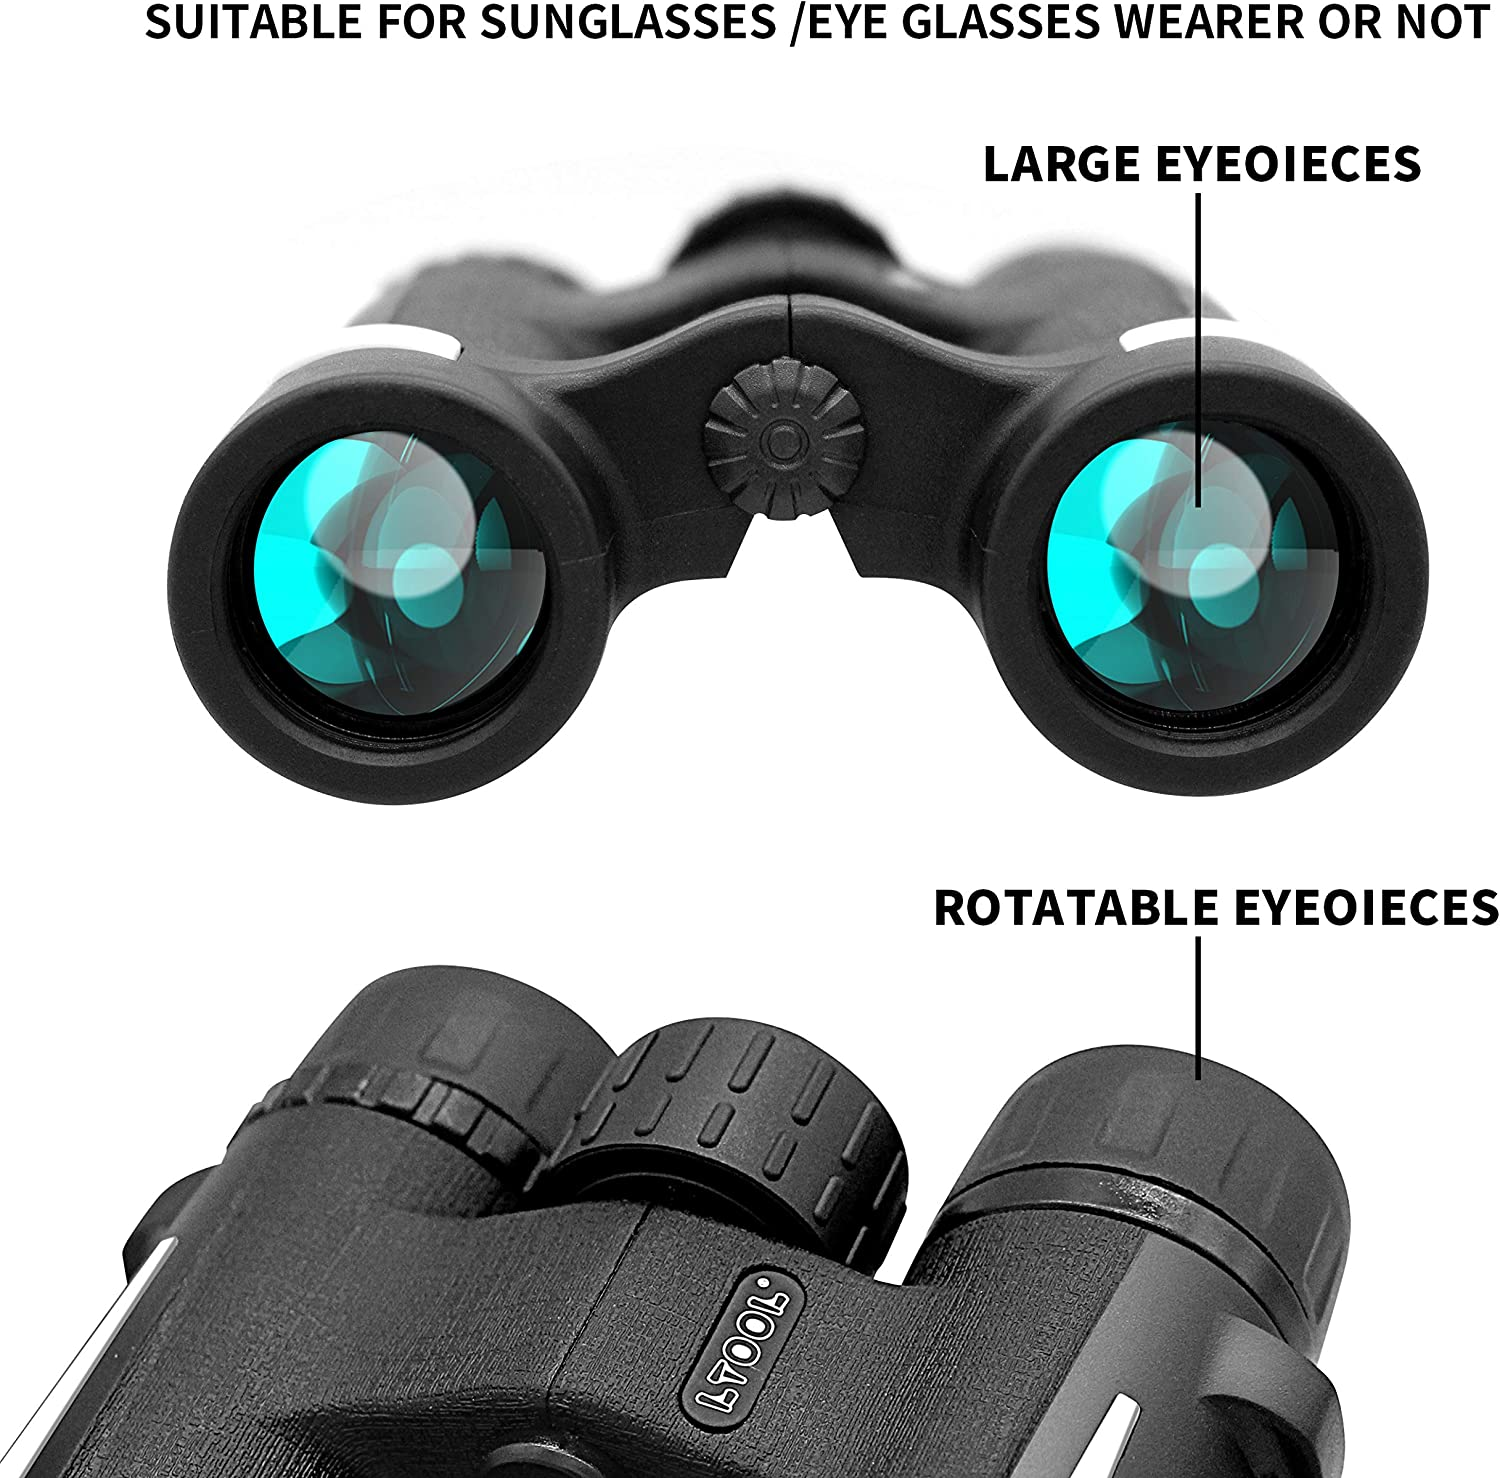 Binoculars for Adults and Kids 10x28 Compact Binoculars Weighs only 0.66 lbs. Lightweight Durable HD Binoculars for Bird Watching Travel Concerts Sports